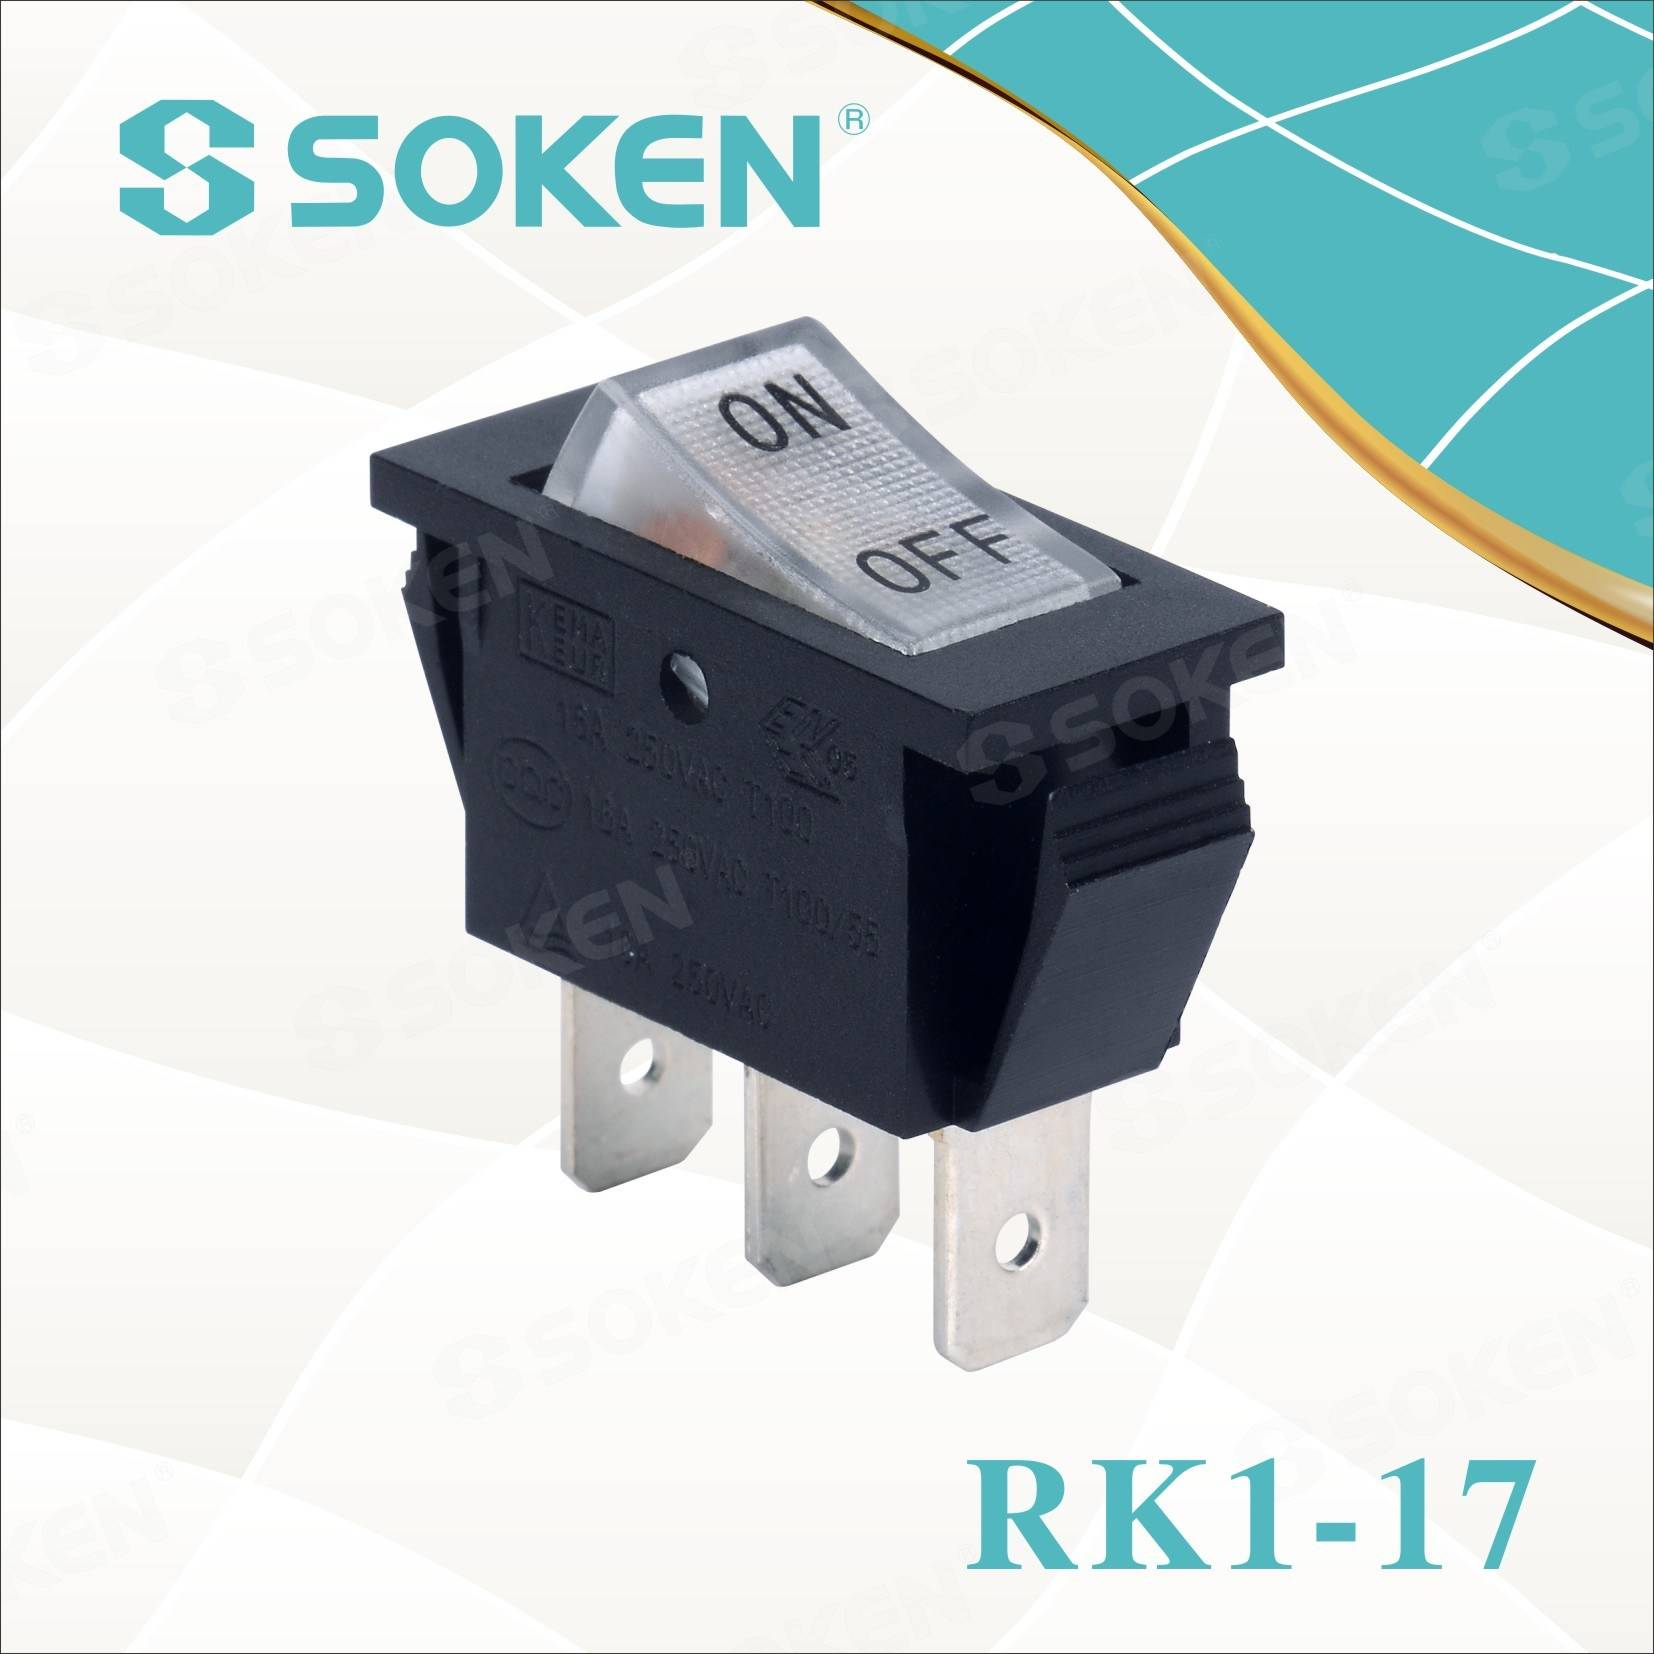 off Işıklı Rocker Switch Söke'nin Rk1-17 1X1n